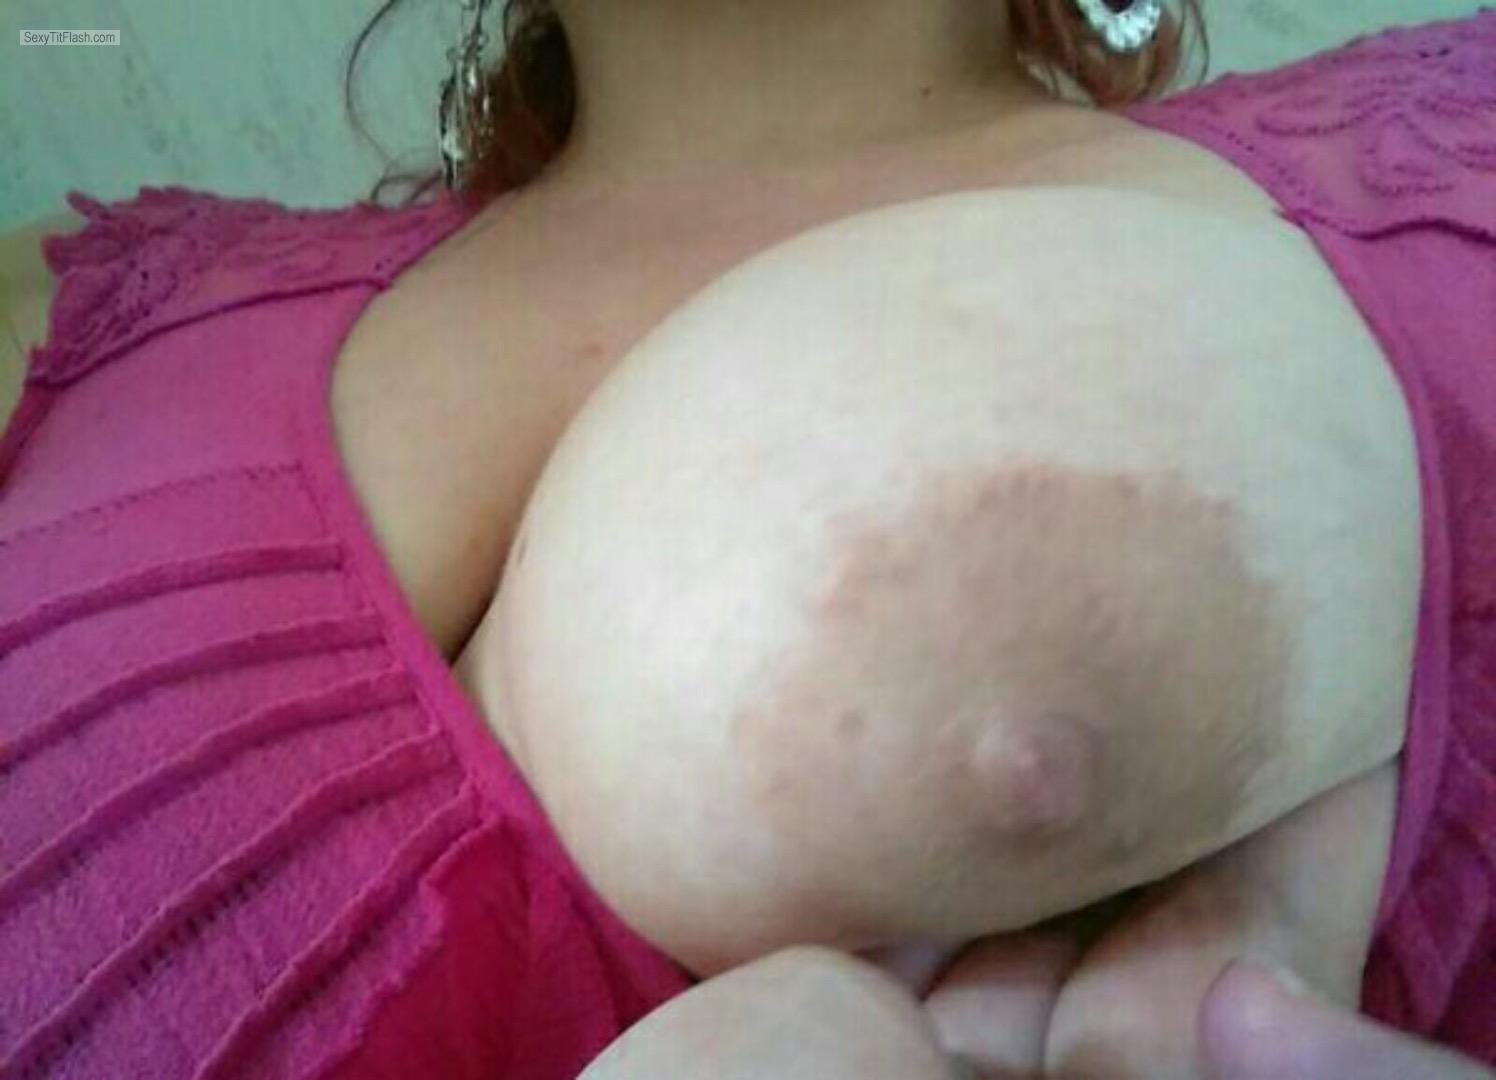 Medium Tits Of A Friend Selfie by Snickers